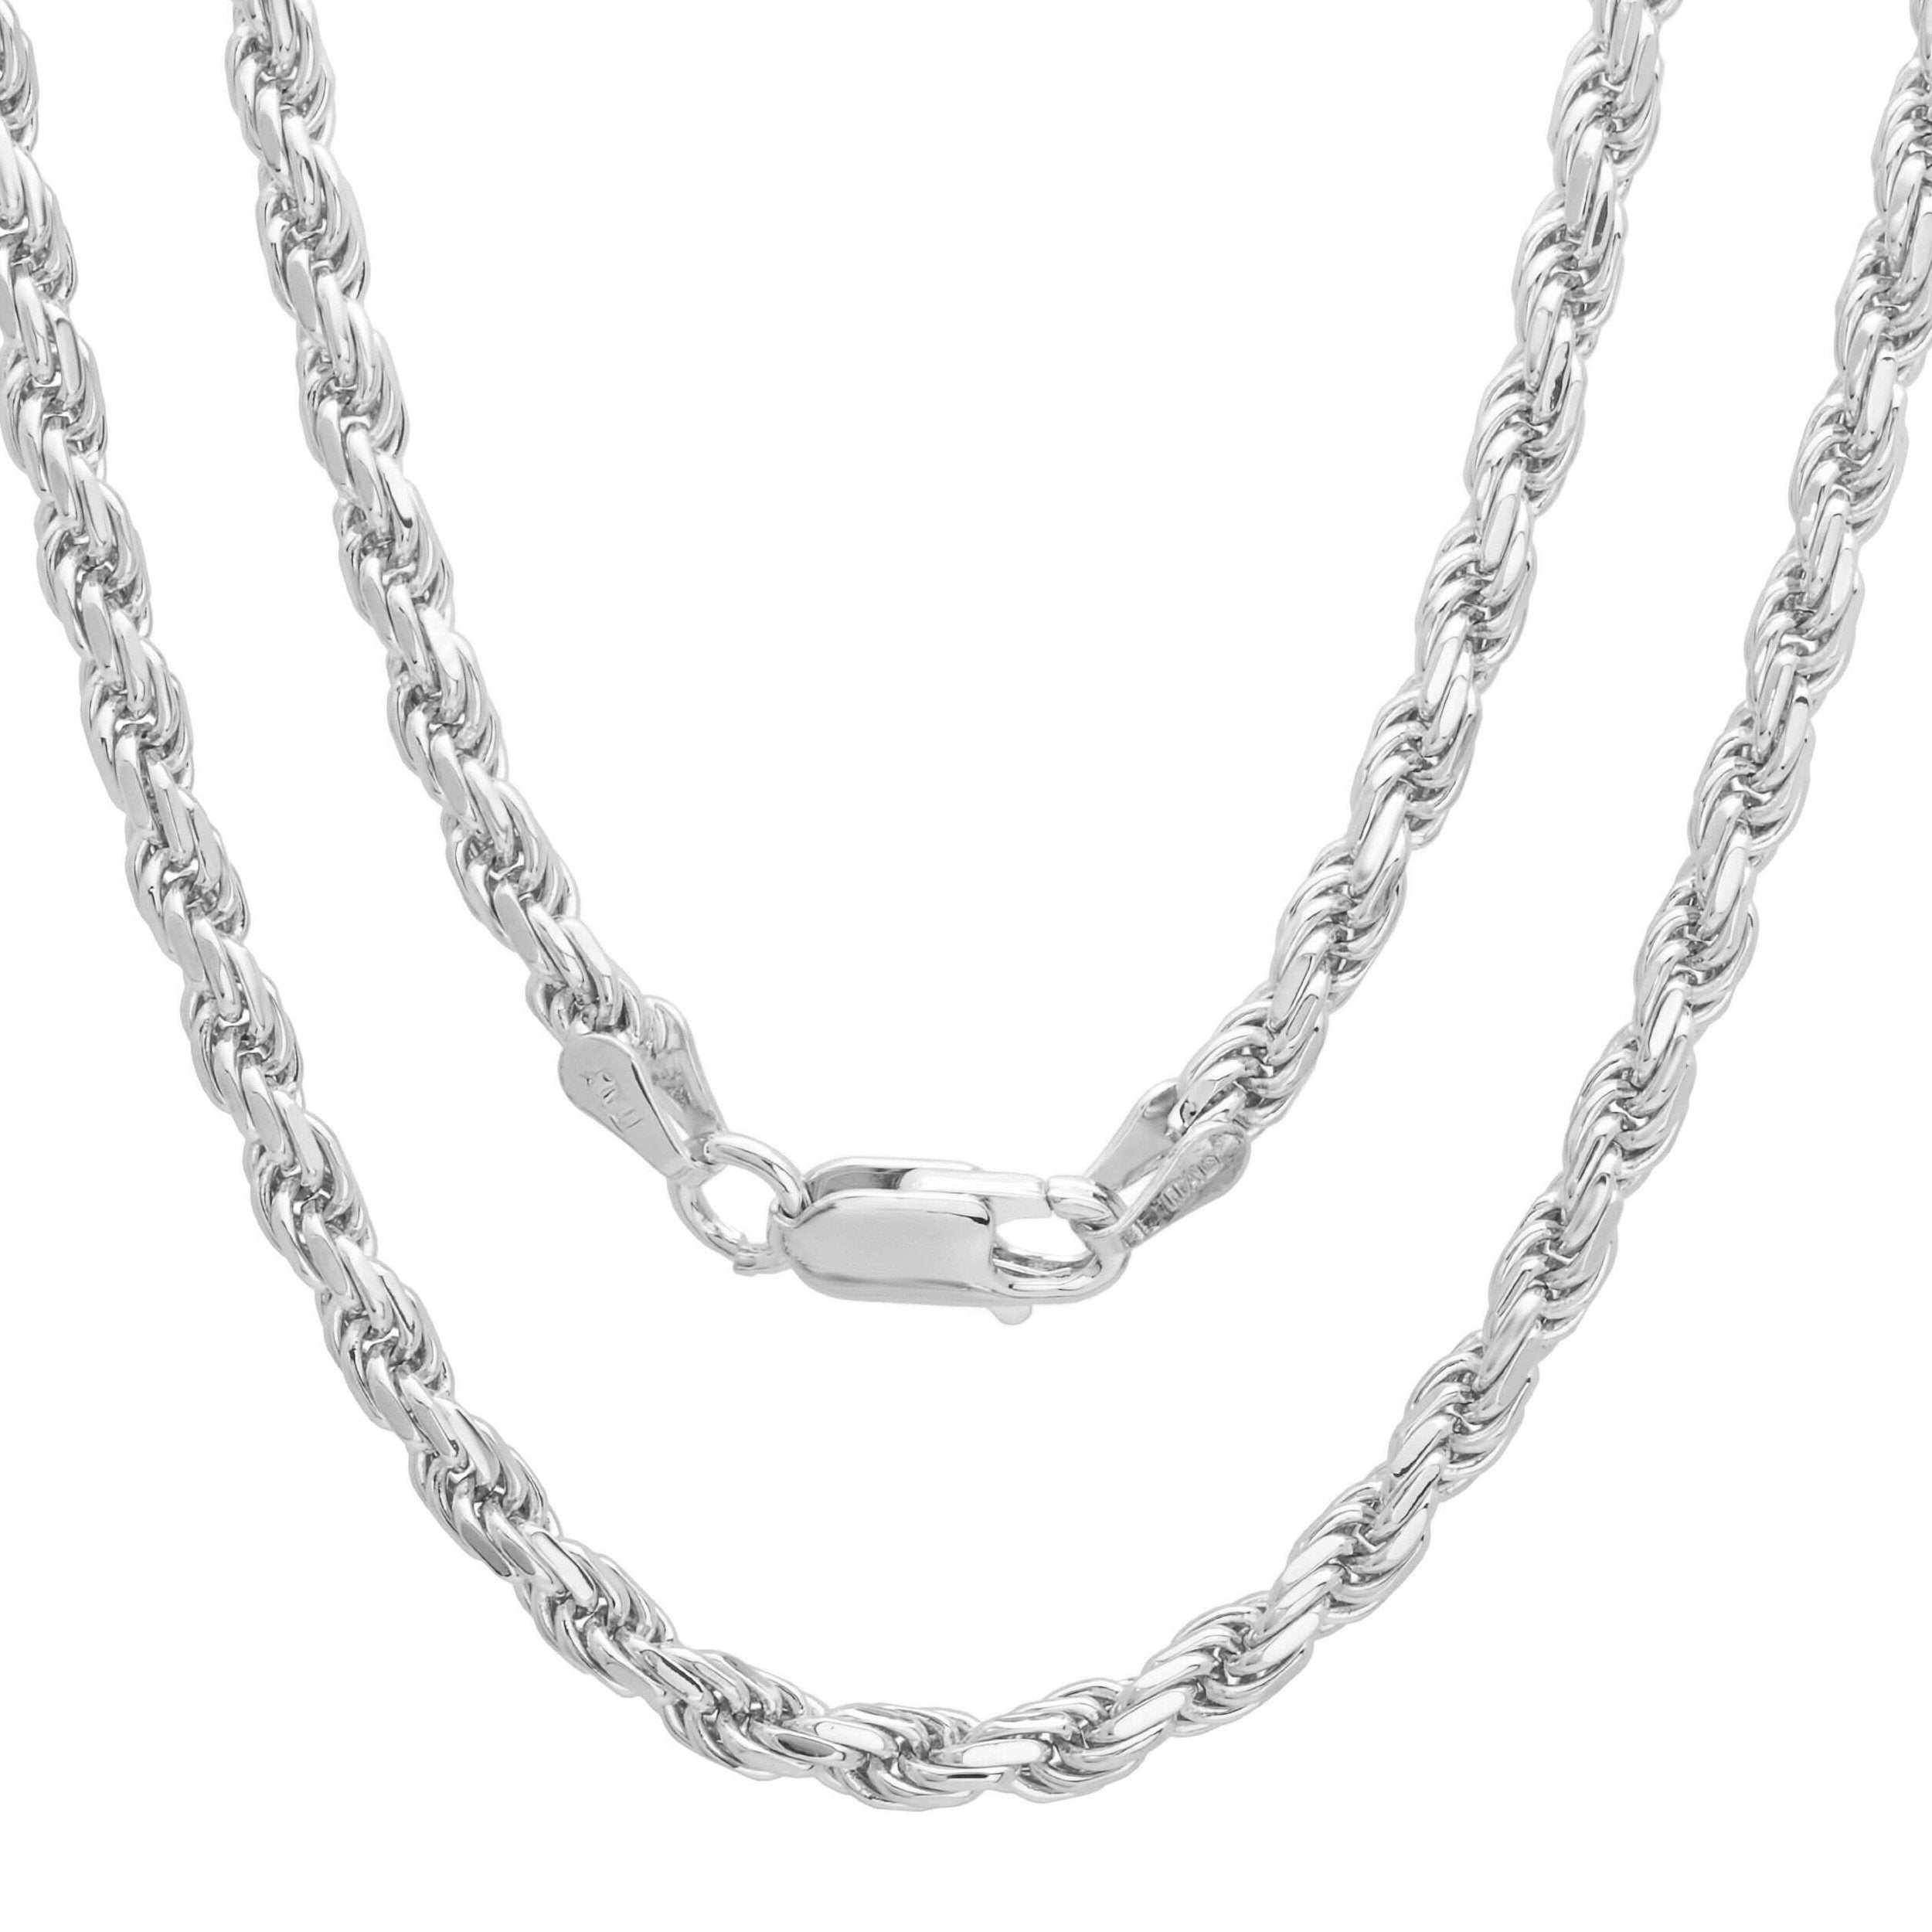 "1.4MM 030 Rhodium Plated Rope Chain .925 Sterling Silver Length ""16-24"" Inches"